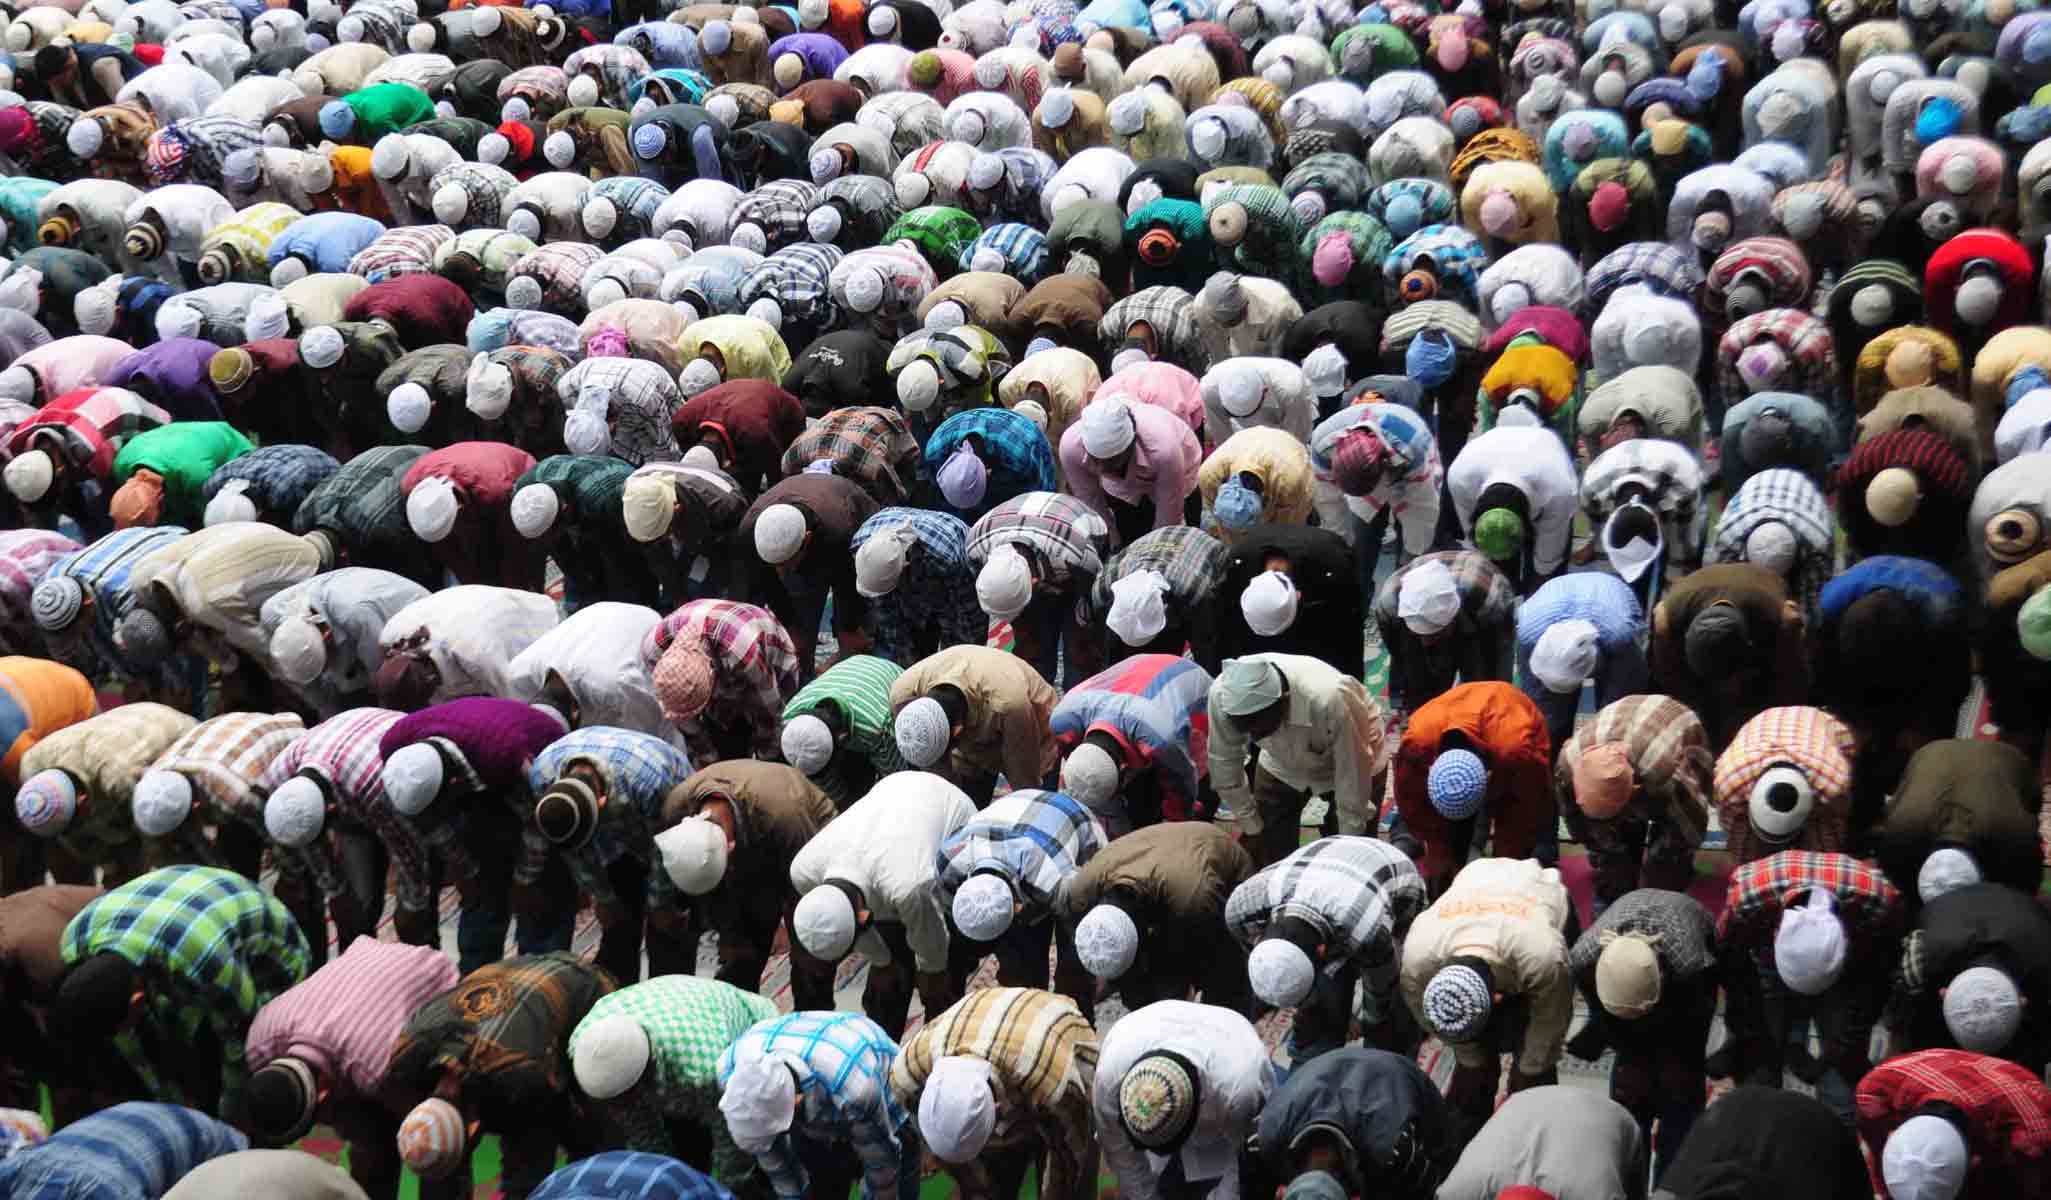 Muslims offer prayers during Eid-al-Fitr in the northern hill town of Shimla August 20, 2012